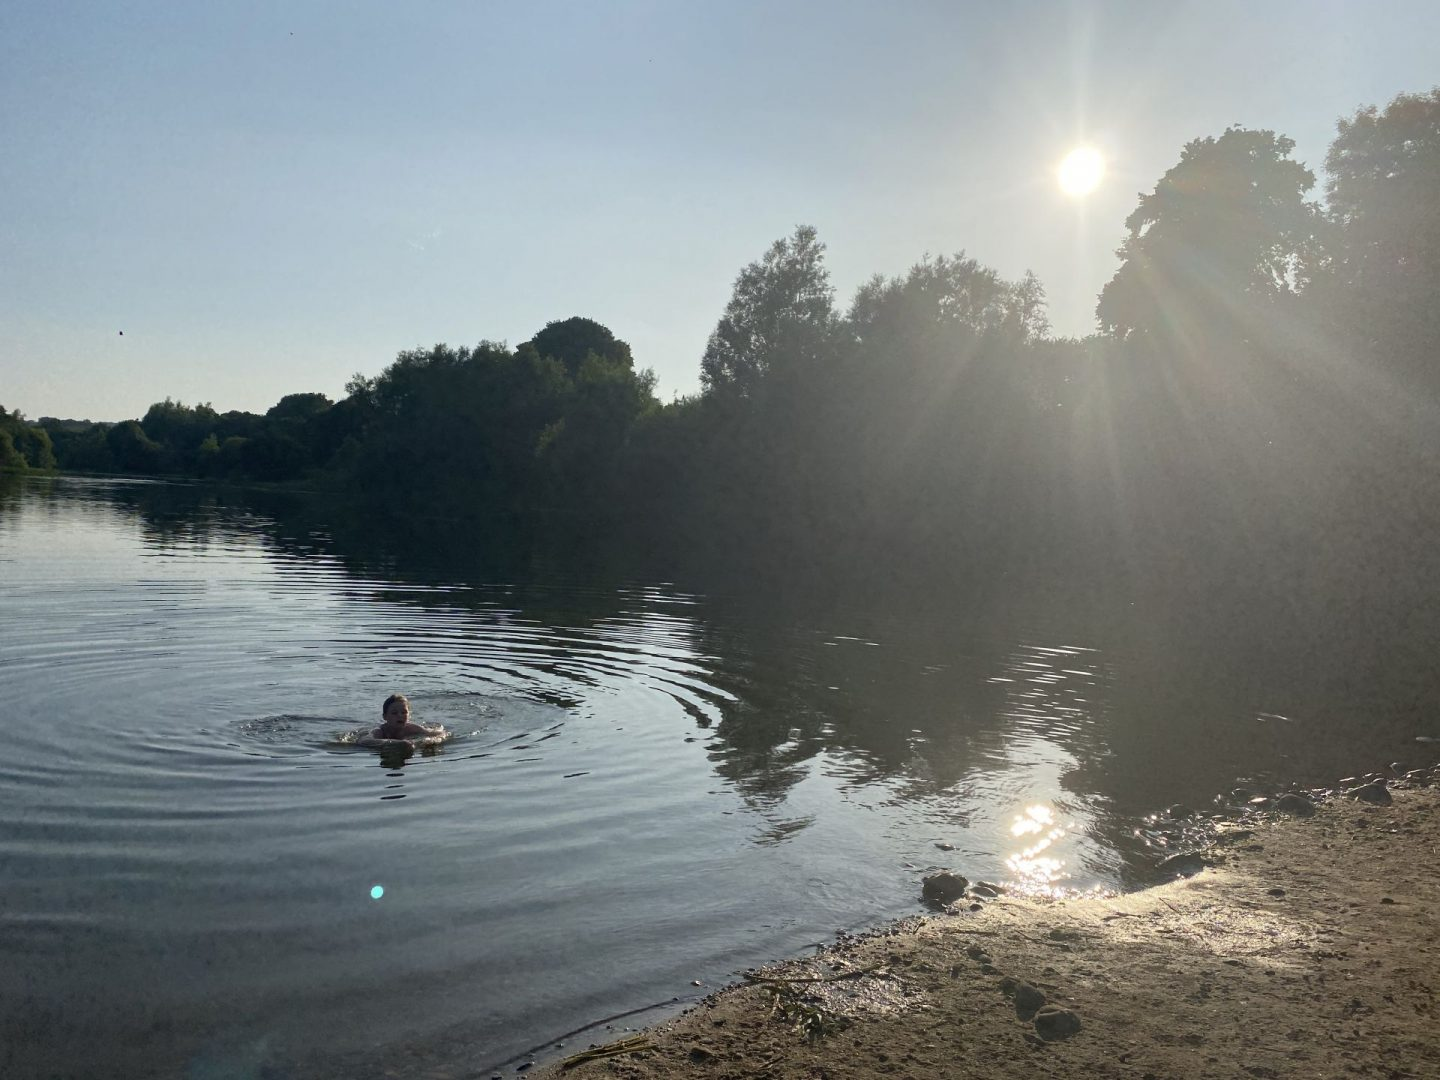 Wild swimming at Avon Lagoon – a fab day in Linlithgow